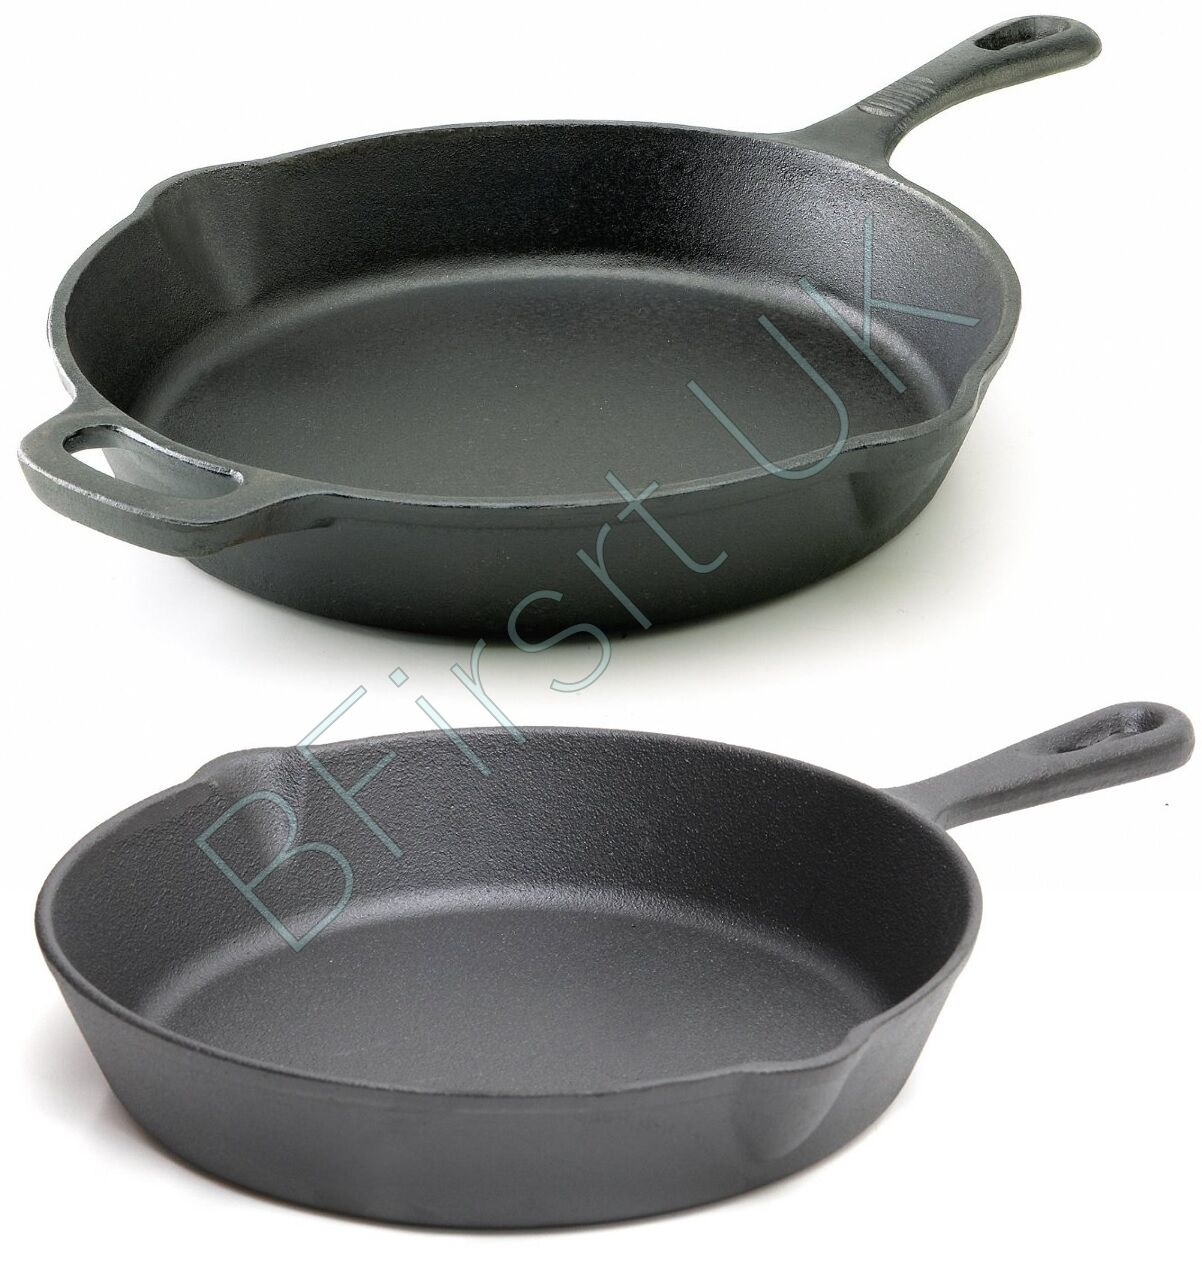 Ovenproof Frying Pan Cast Iron Induction Non Stick Grill Pan Skillet Cooking